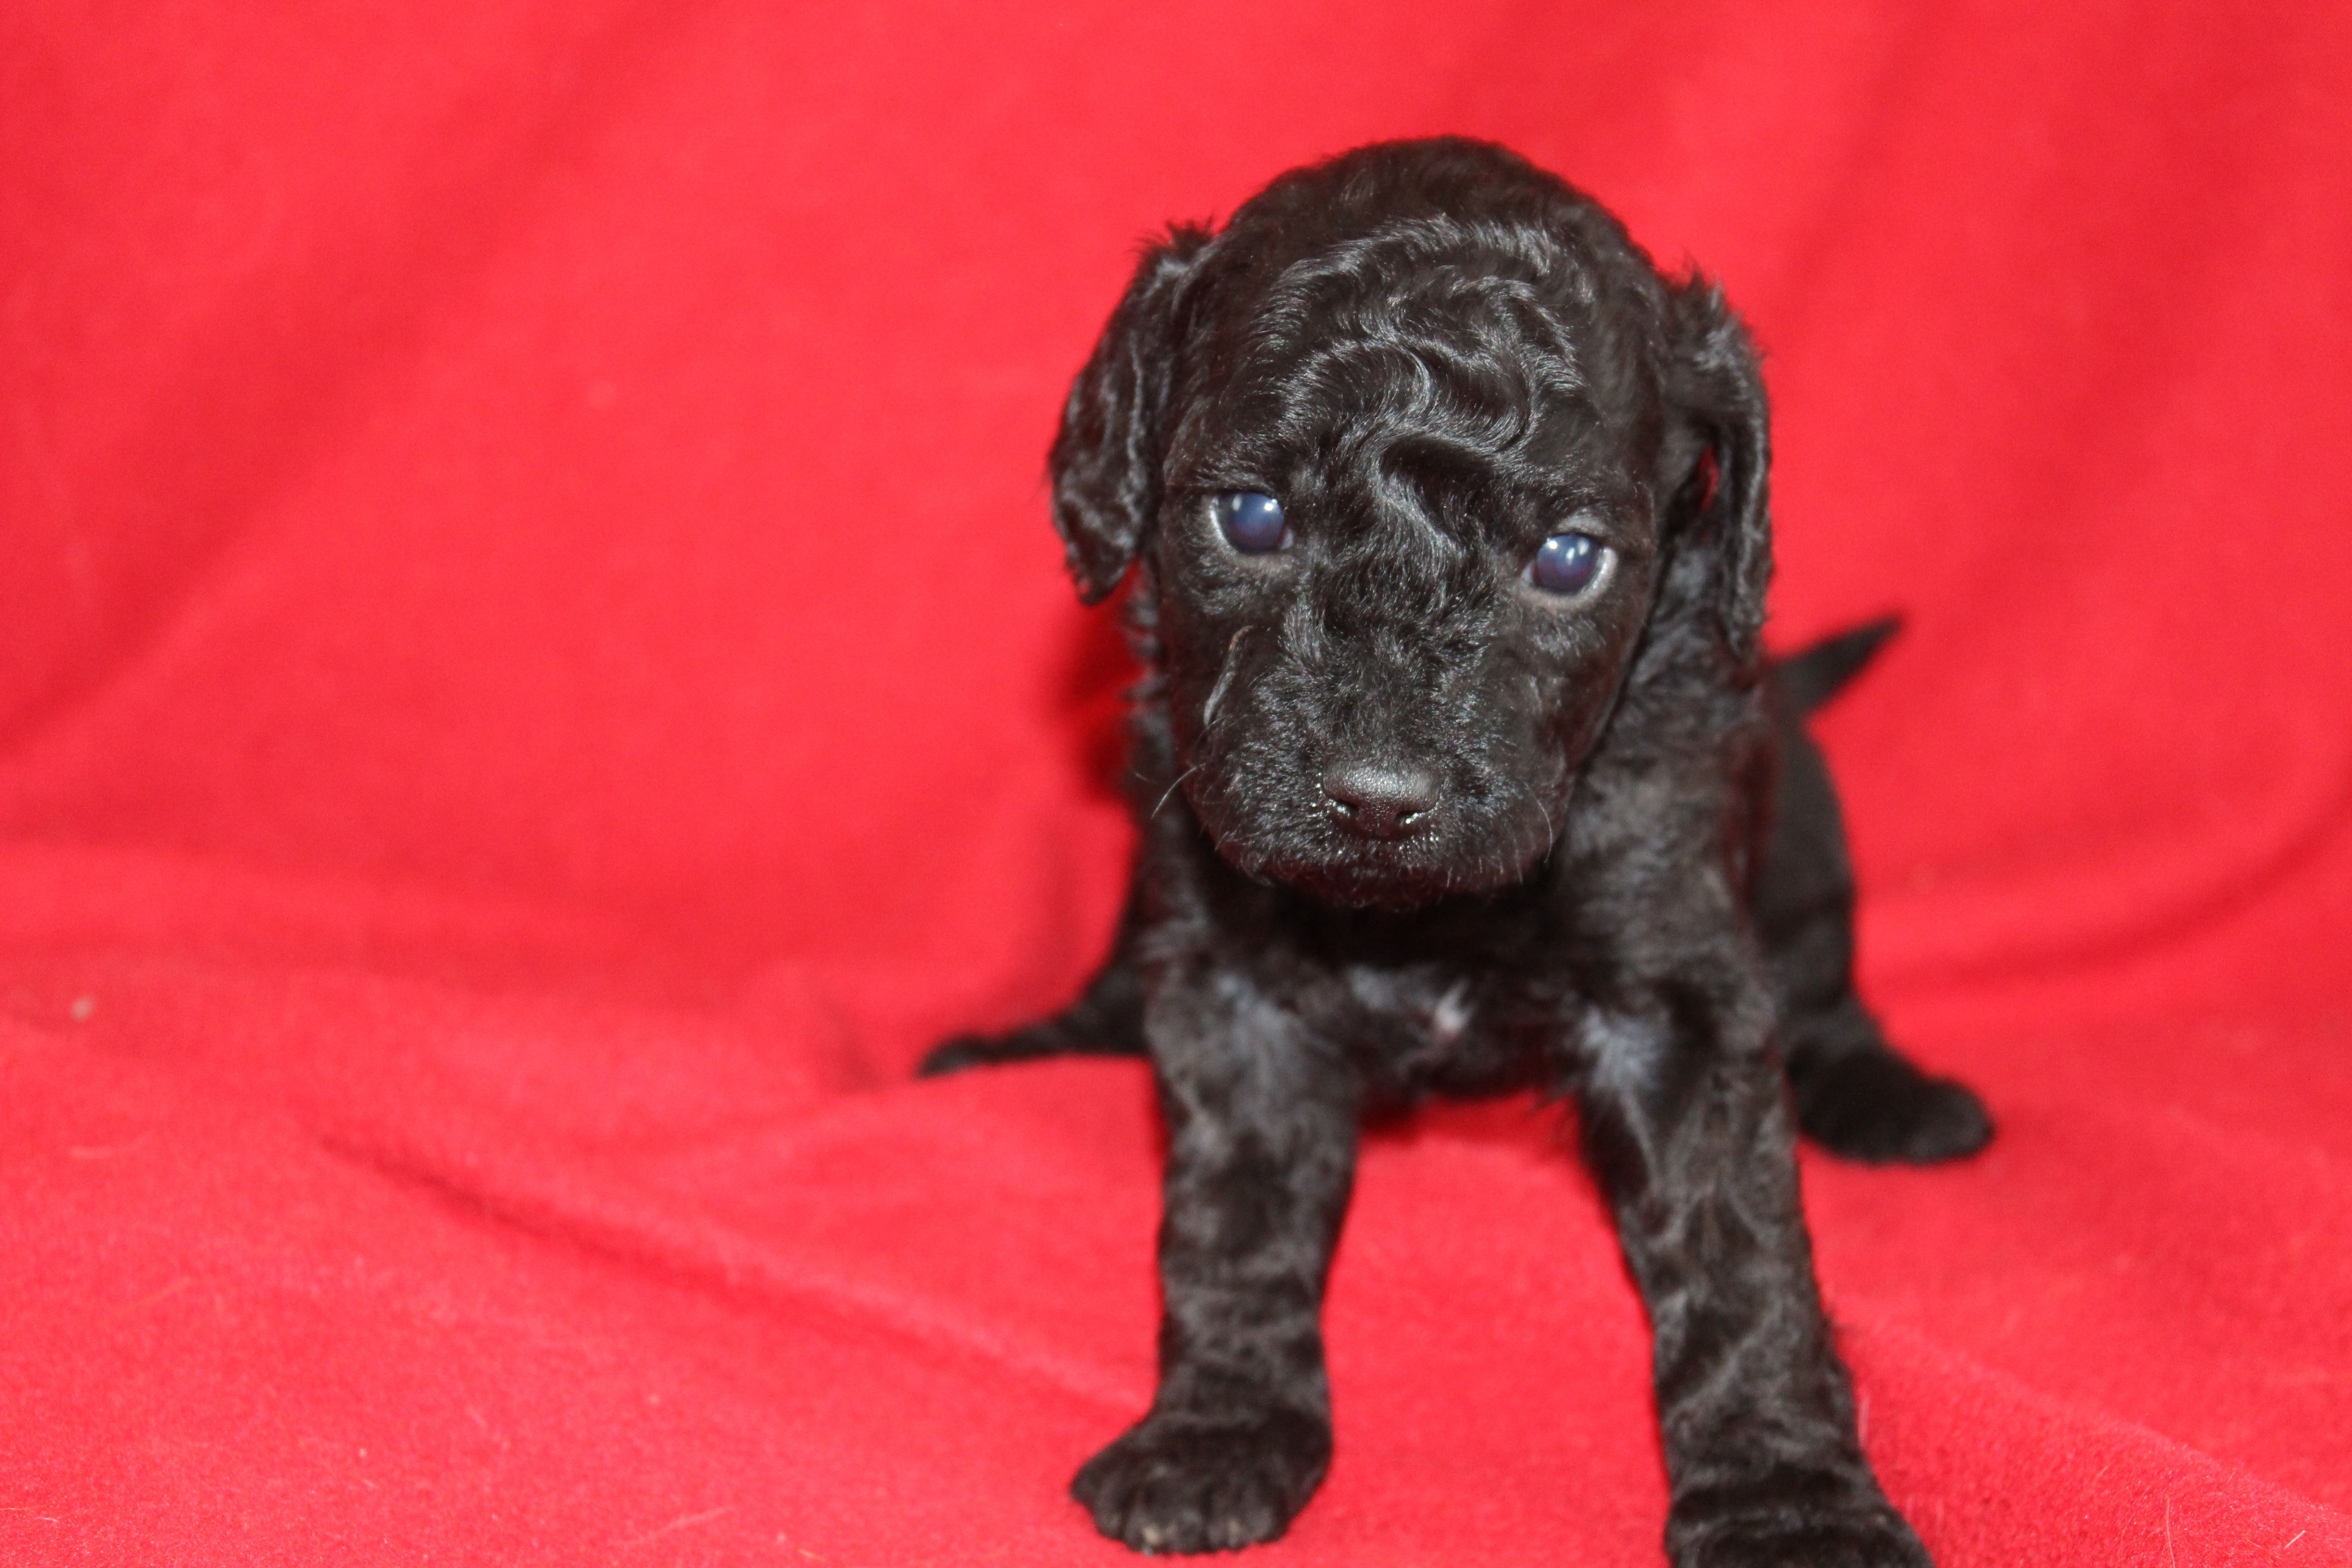 Day 28 female mini goldendoodle puppy (the runt!) Black